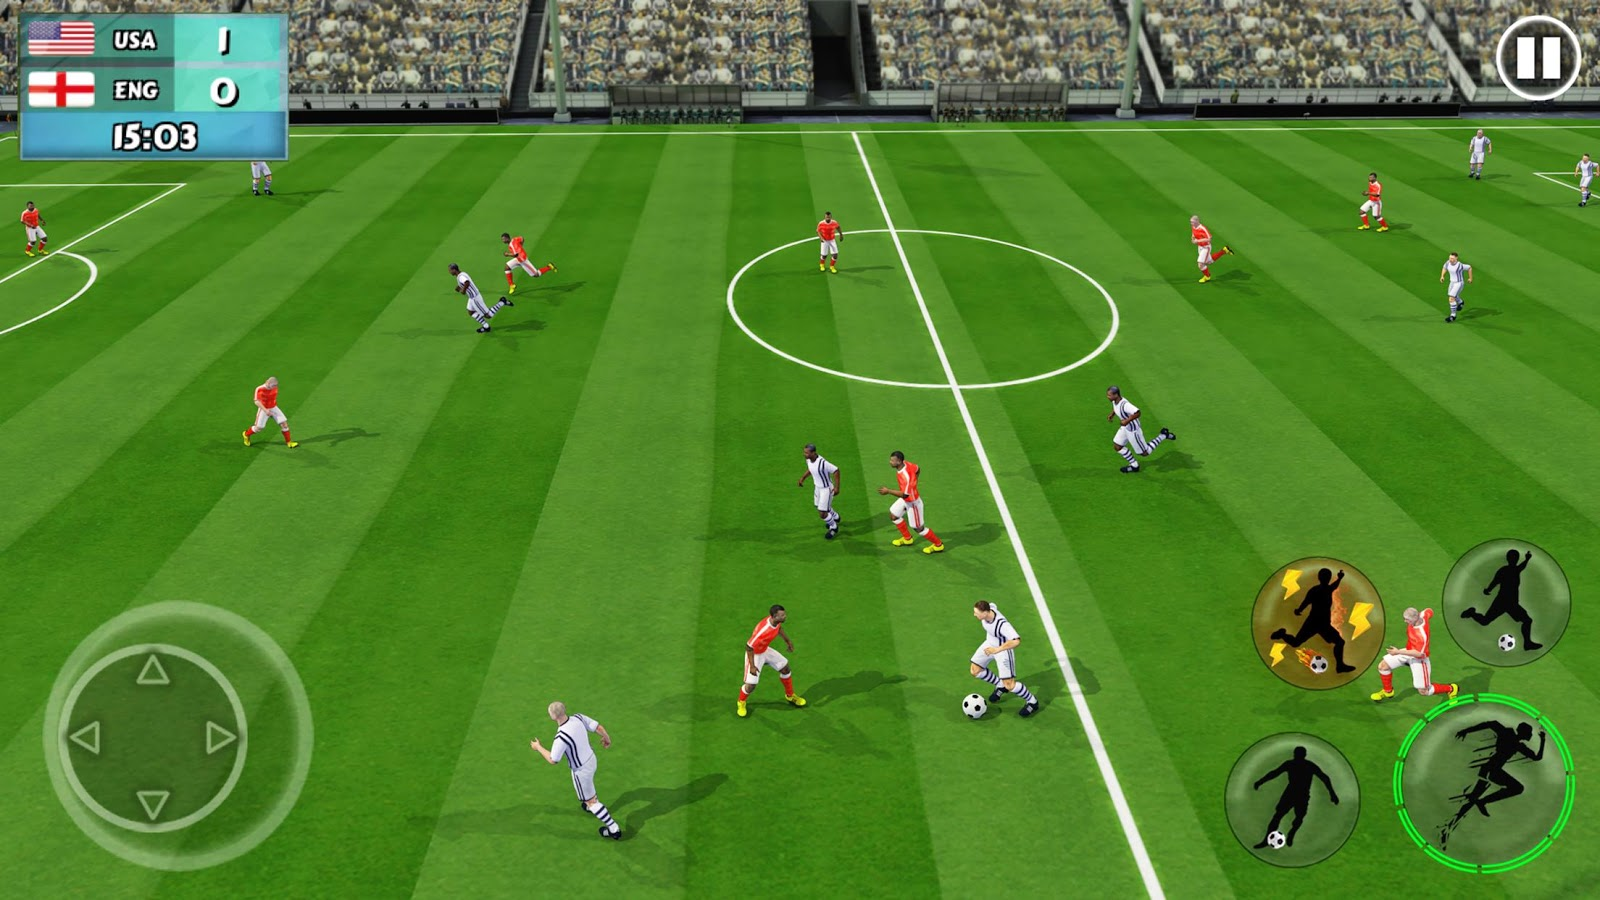 download pes 2016 apk data for android ppsspp